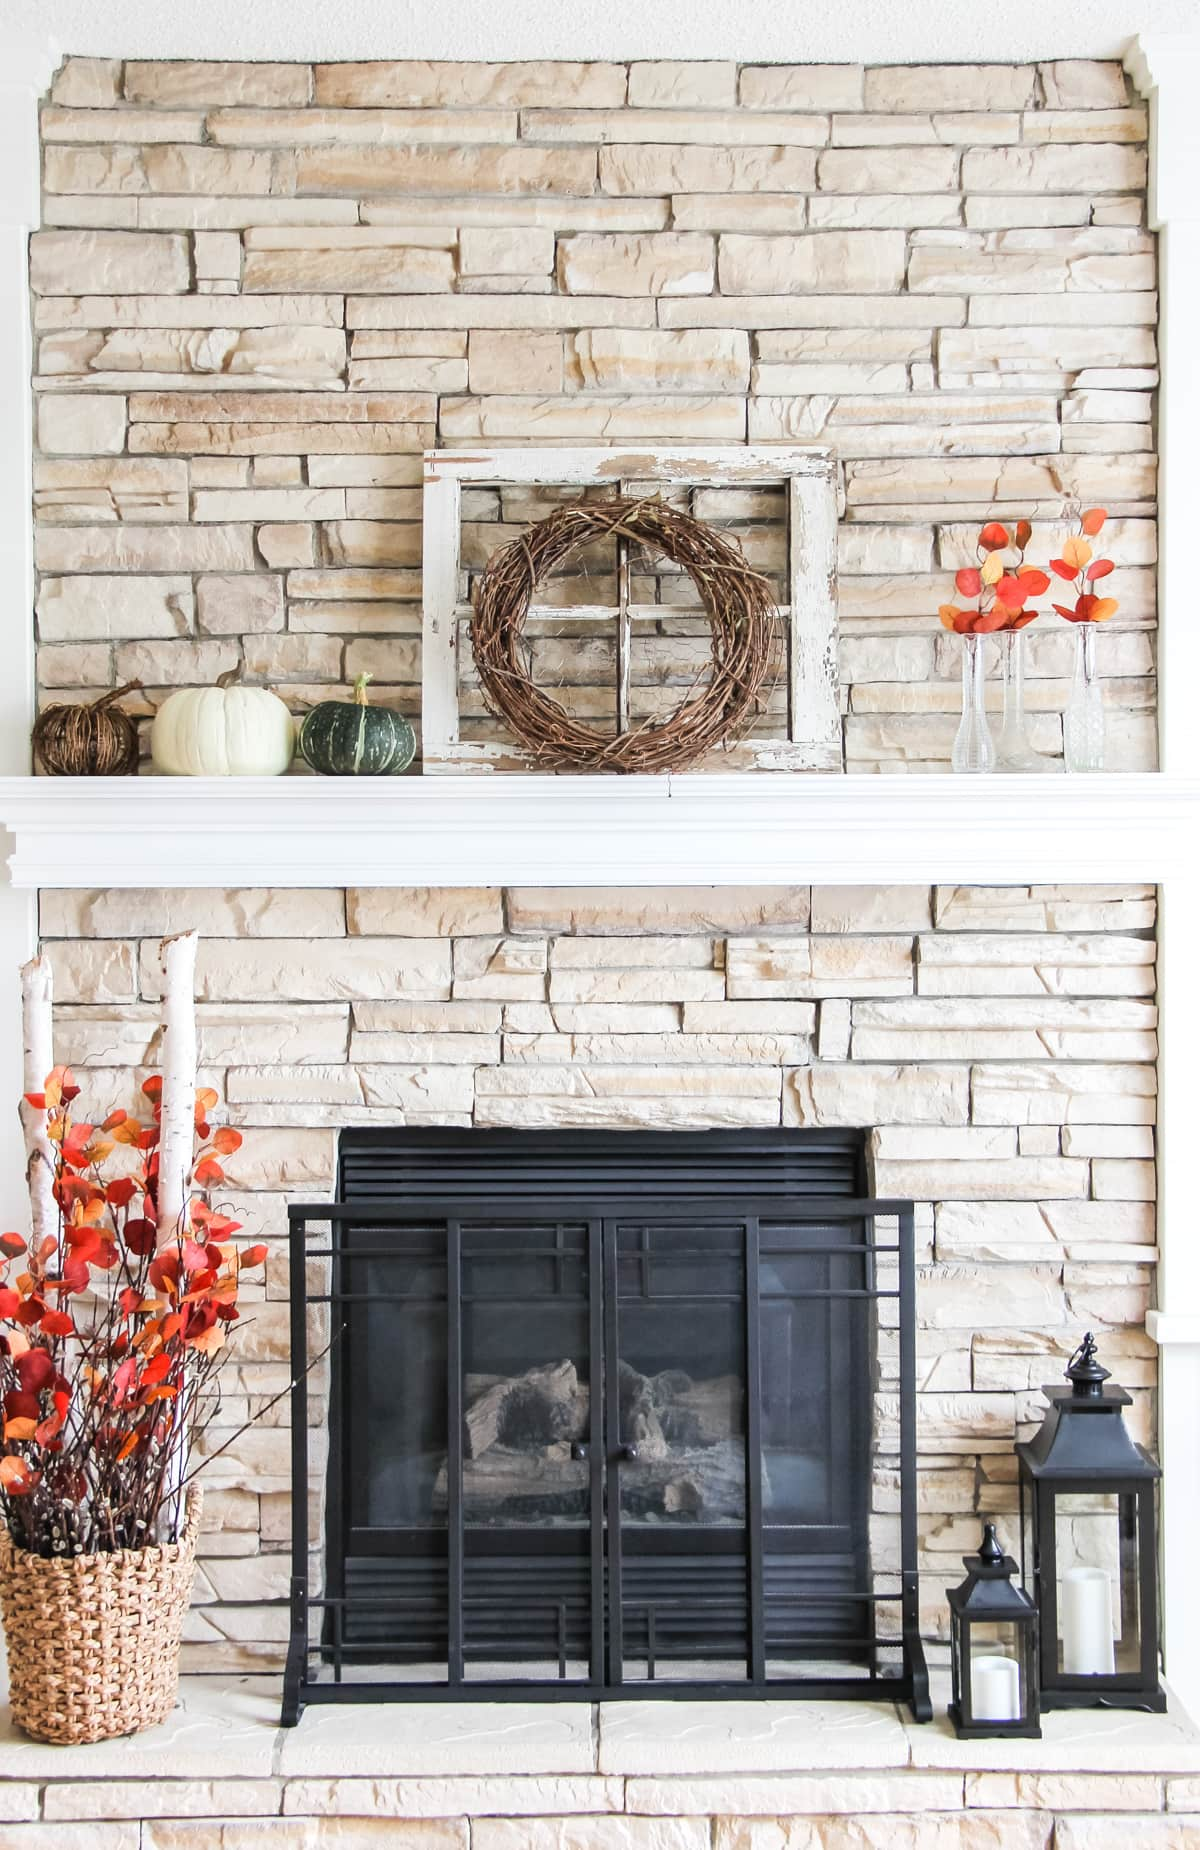 Nice and simple fall mantel decorations!